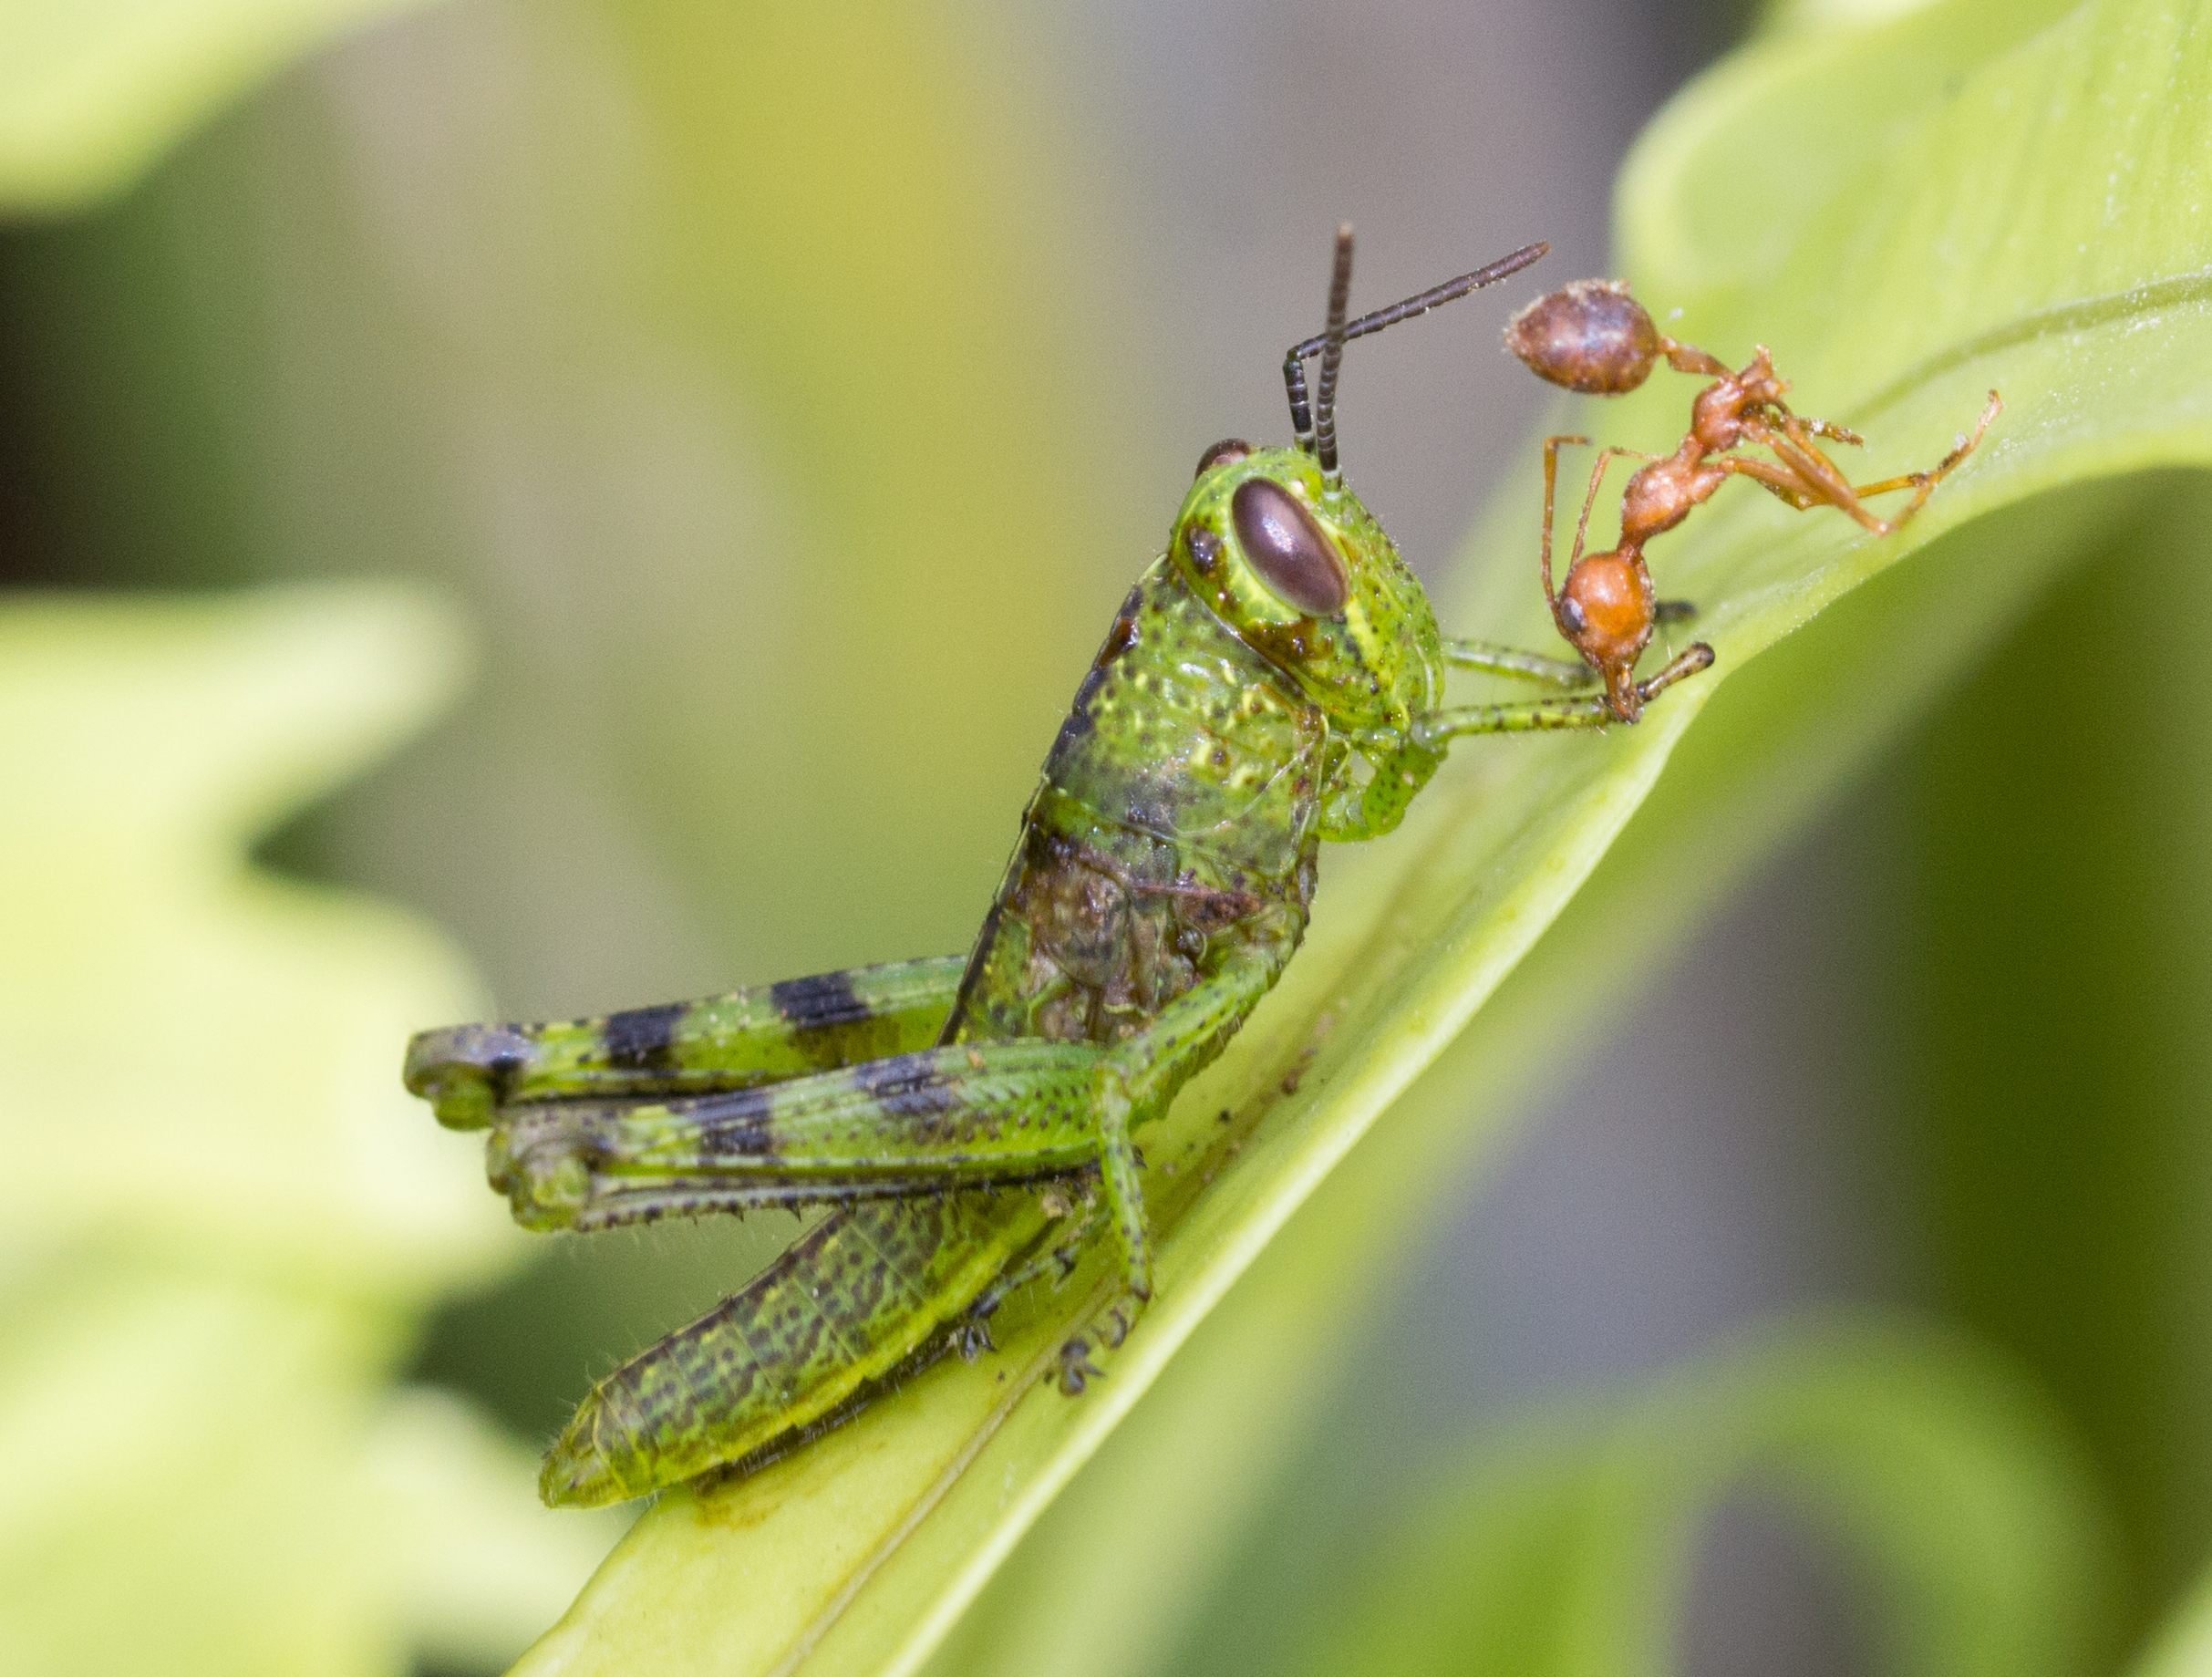 Are You A Grasshopper Or An Ant Risk Taking In Lab